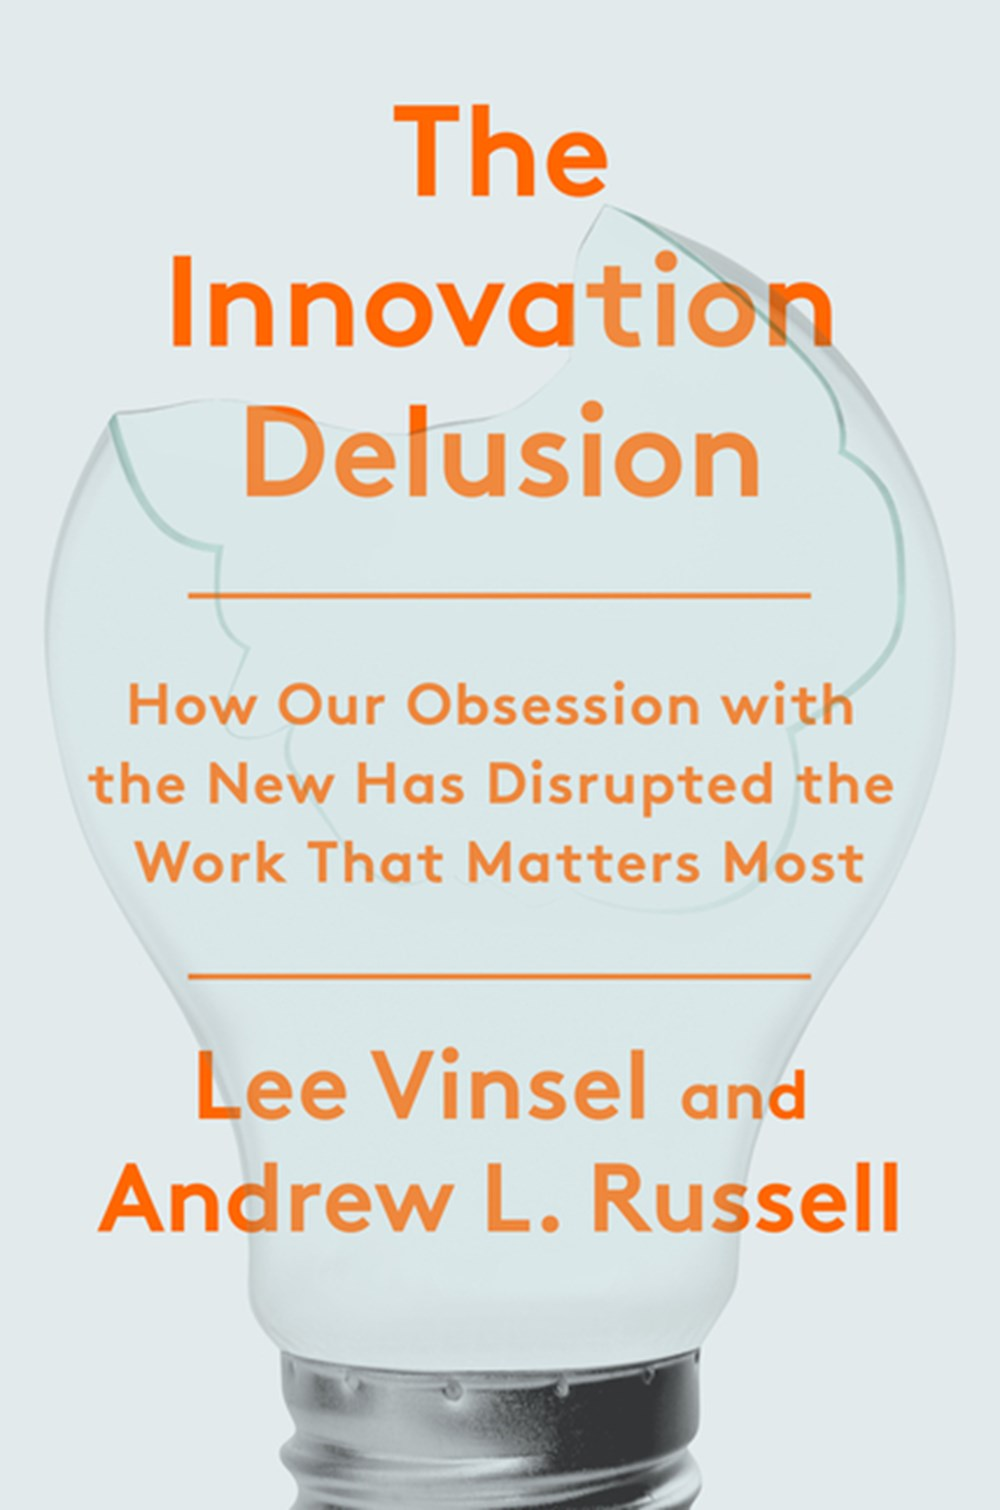 Innovation Delusion How Our Obsession with the New Has Disrupted the Work That Matters Most